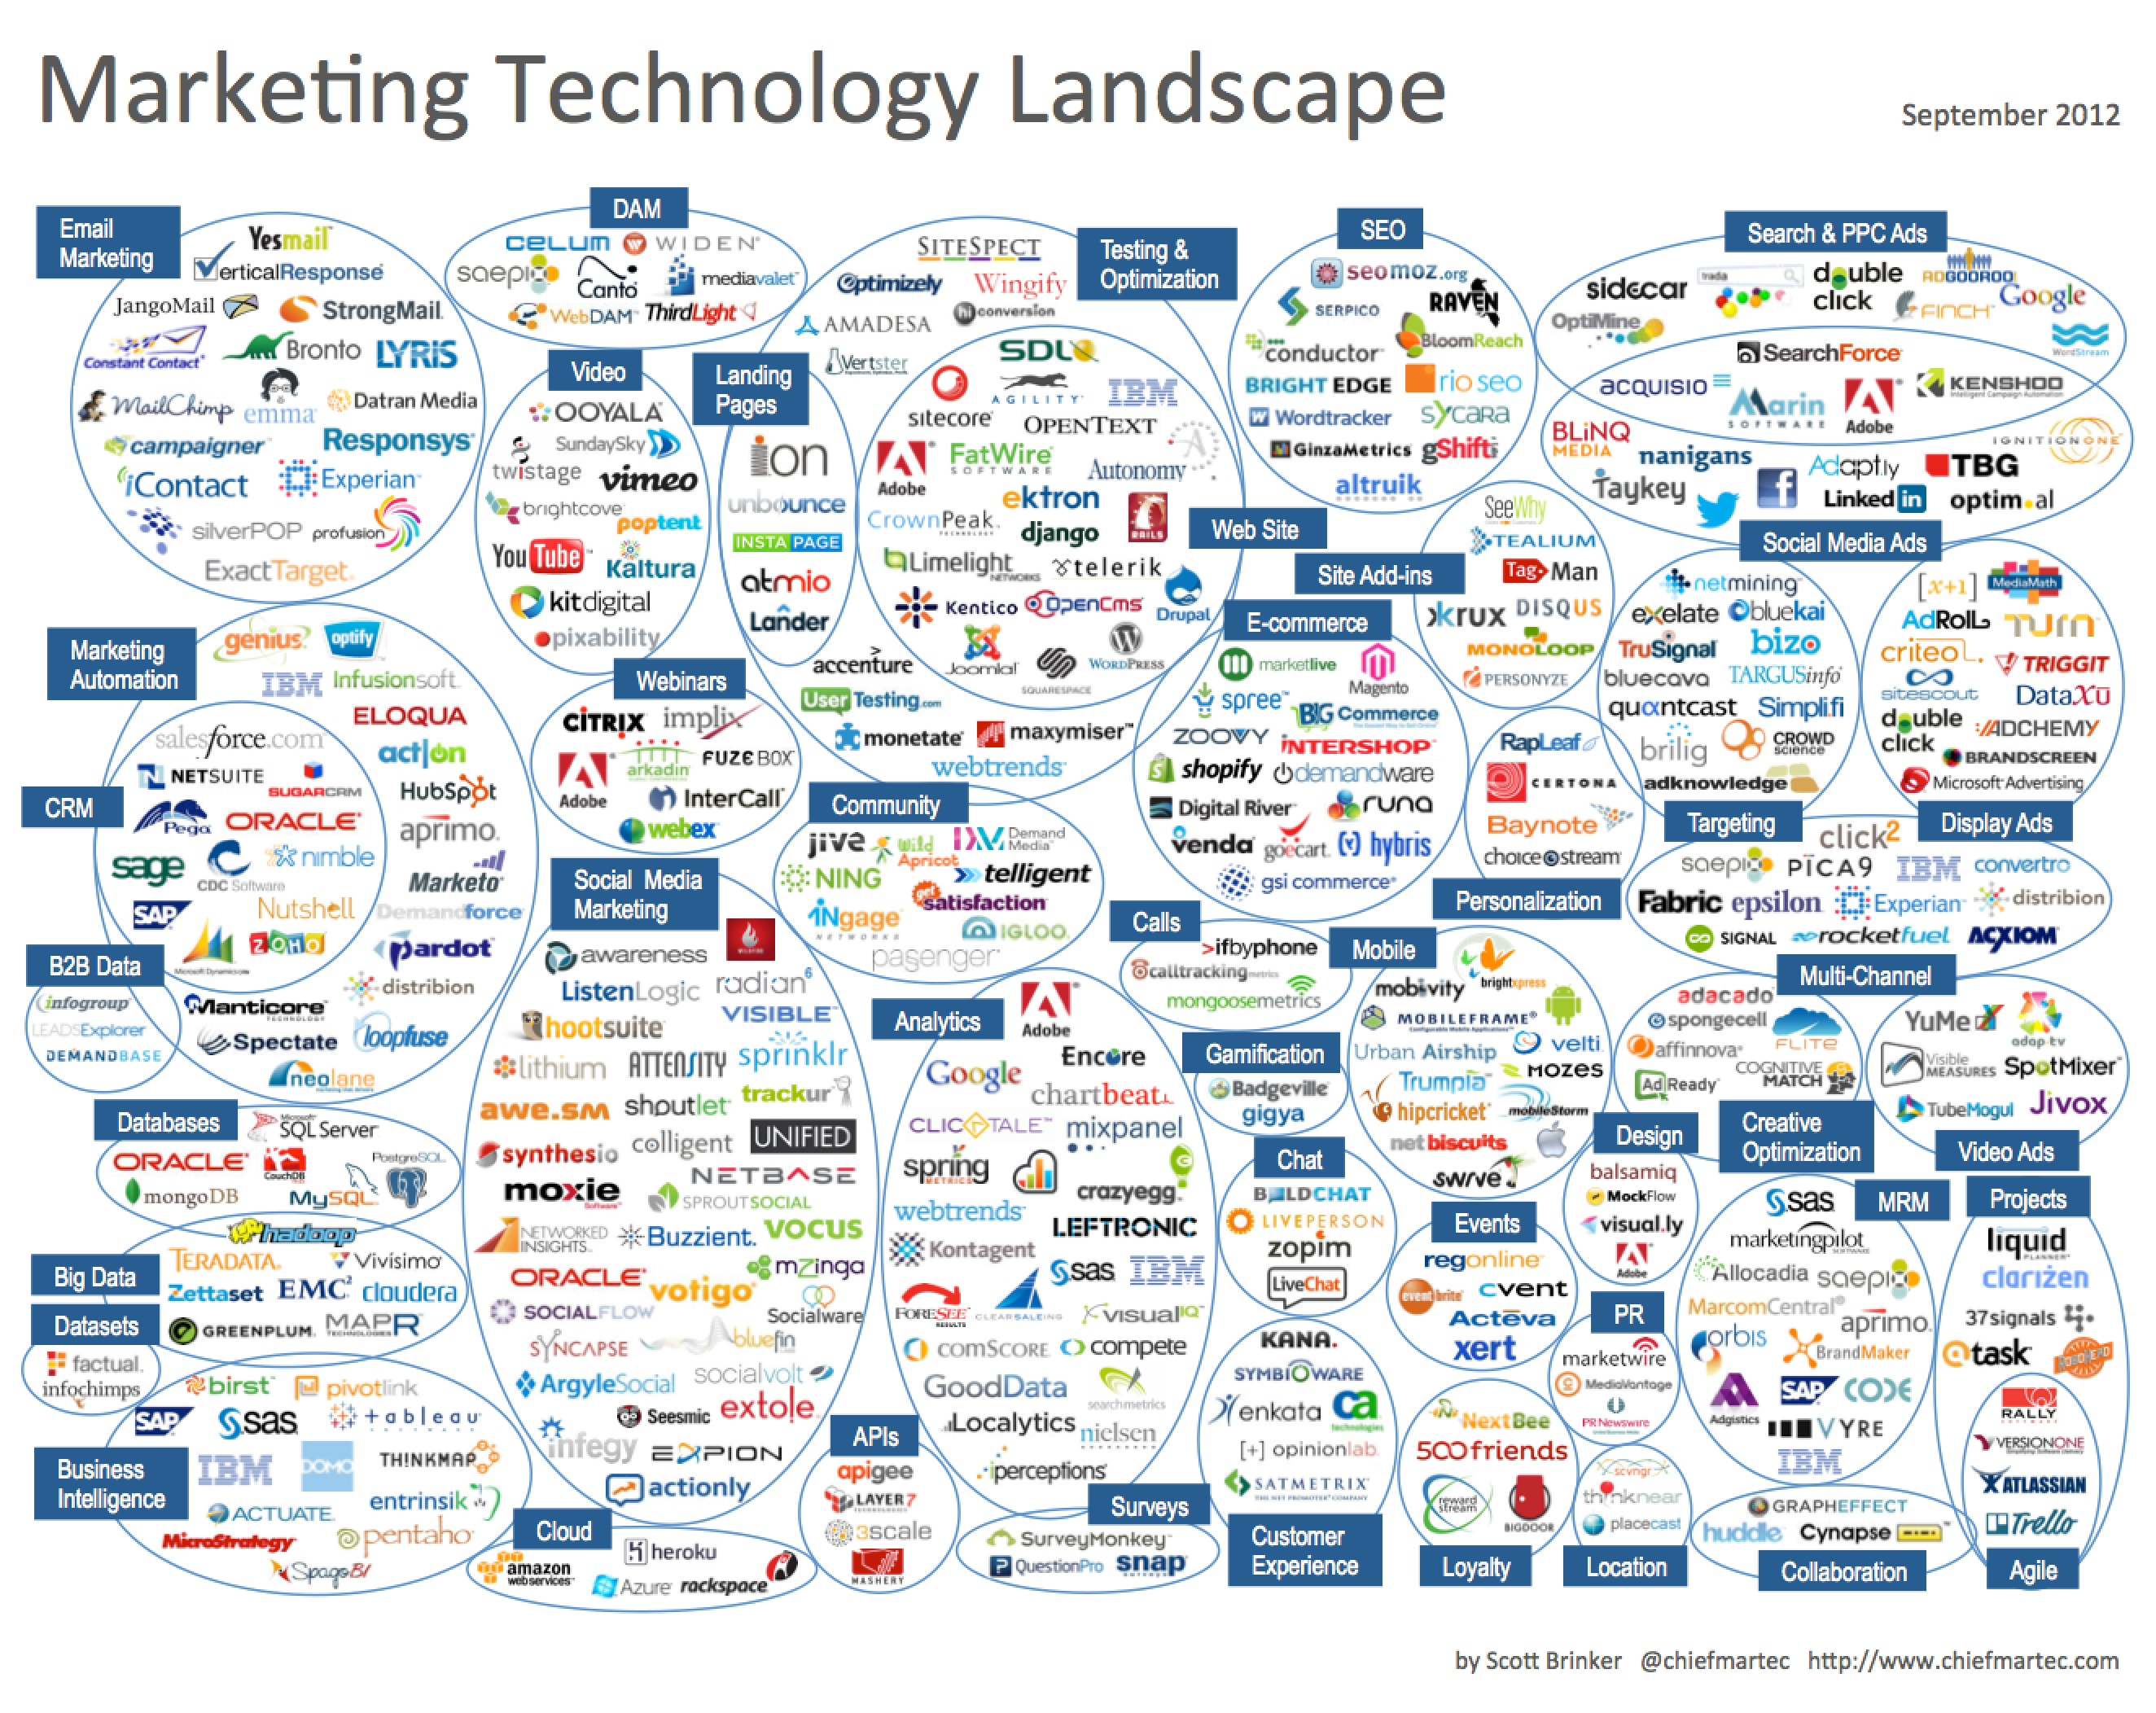 Marketing Technology Landscape 2012